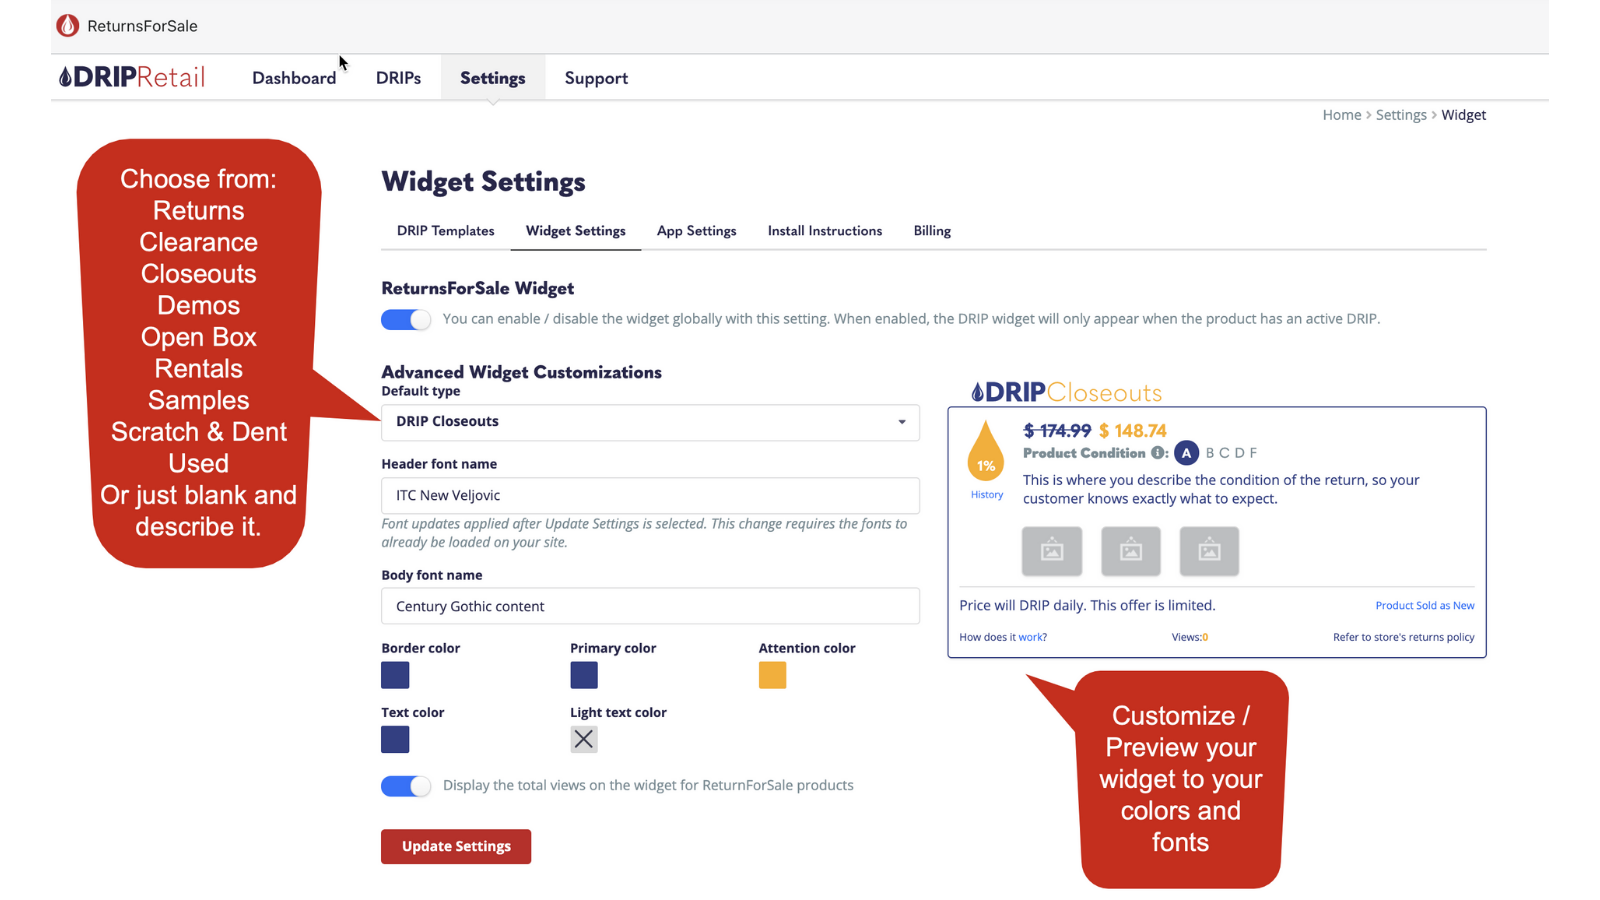 Customize the widget to your brand and theme.